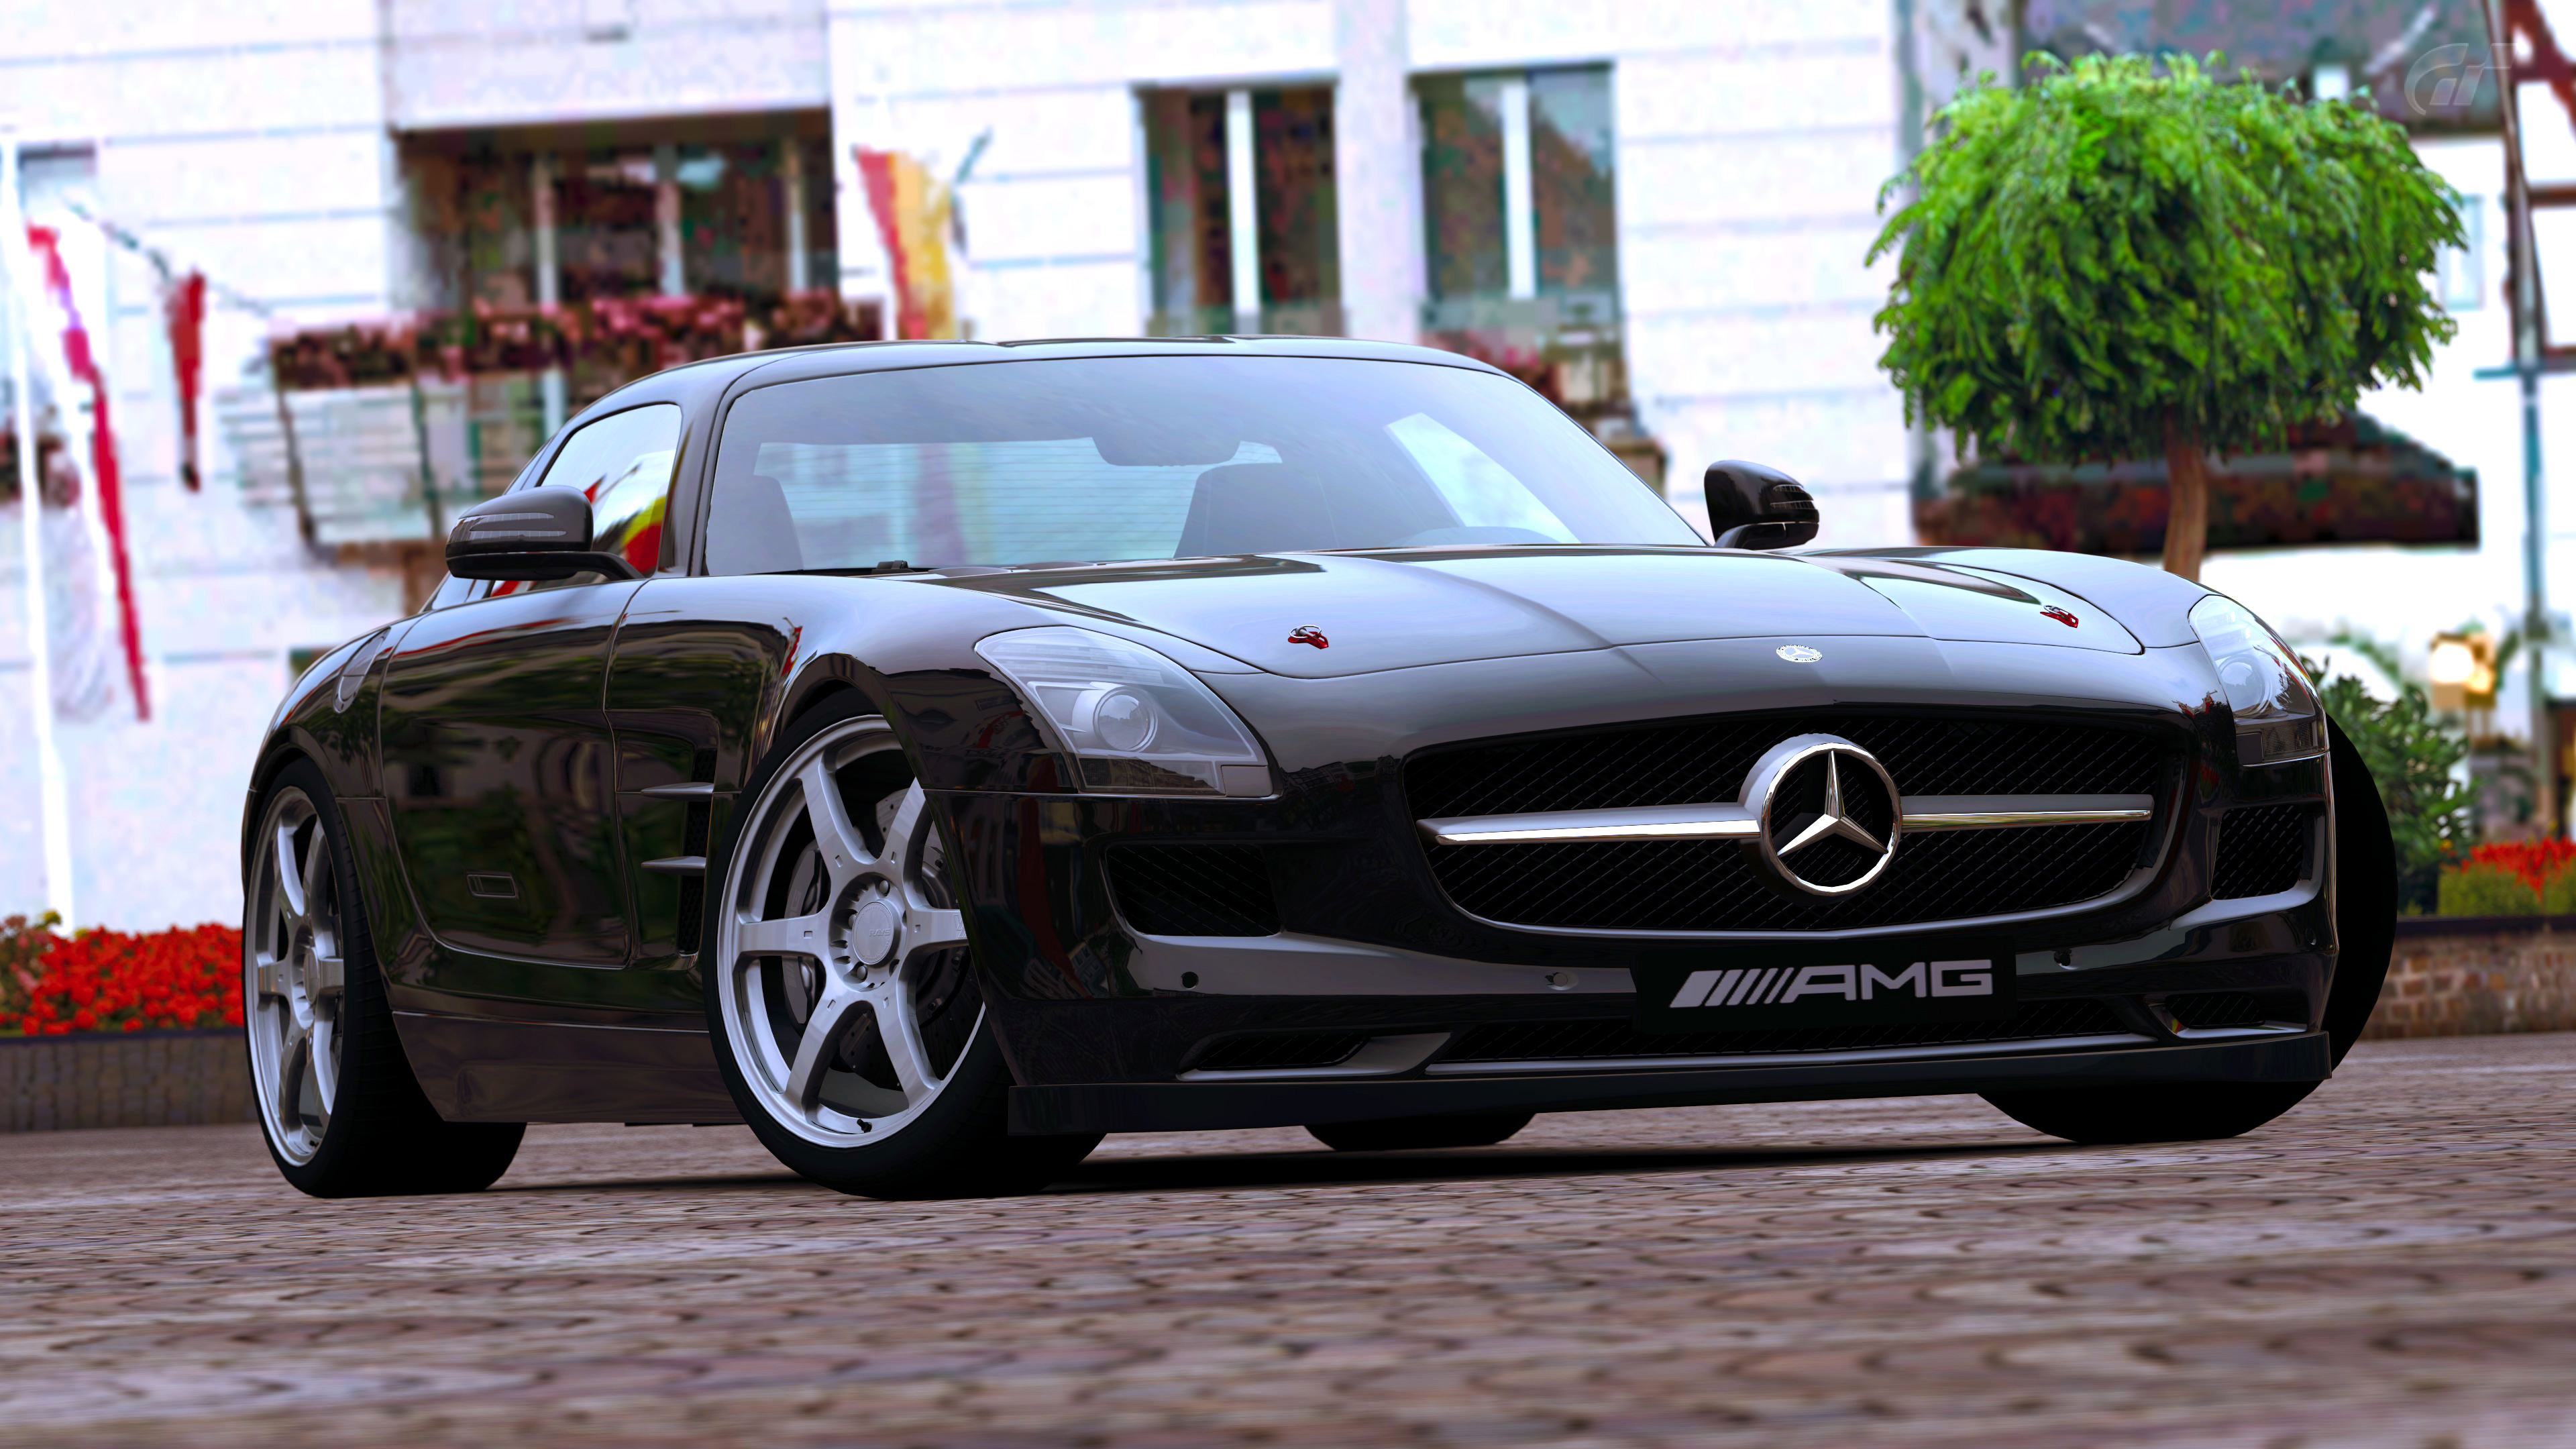 2010 mercedes benz sls amg gran turismo 5 by vertualissimo on deviantart. Black Bedroom Furniture Sets. Home Design Ideas